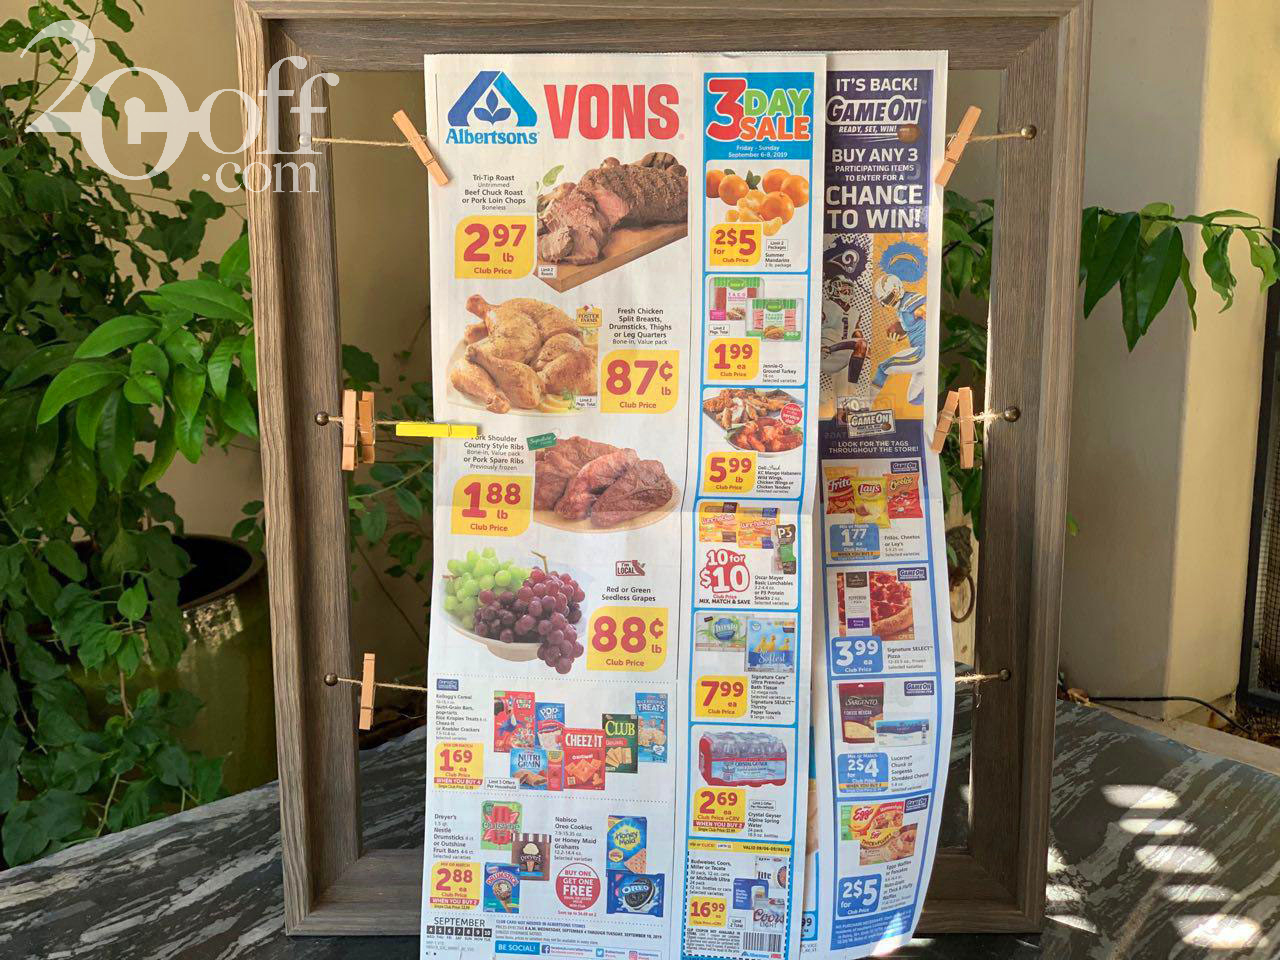 Vons Albertsons Weekly Ad